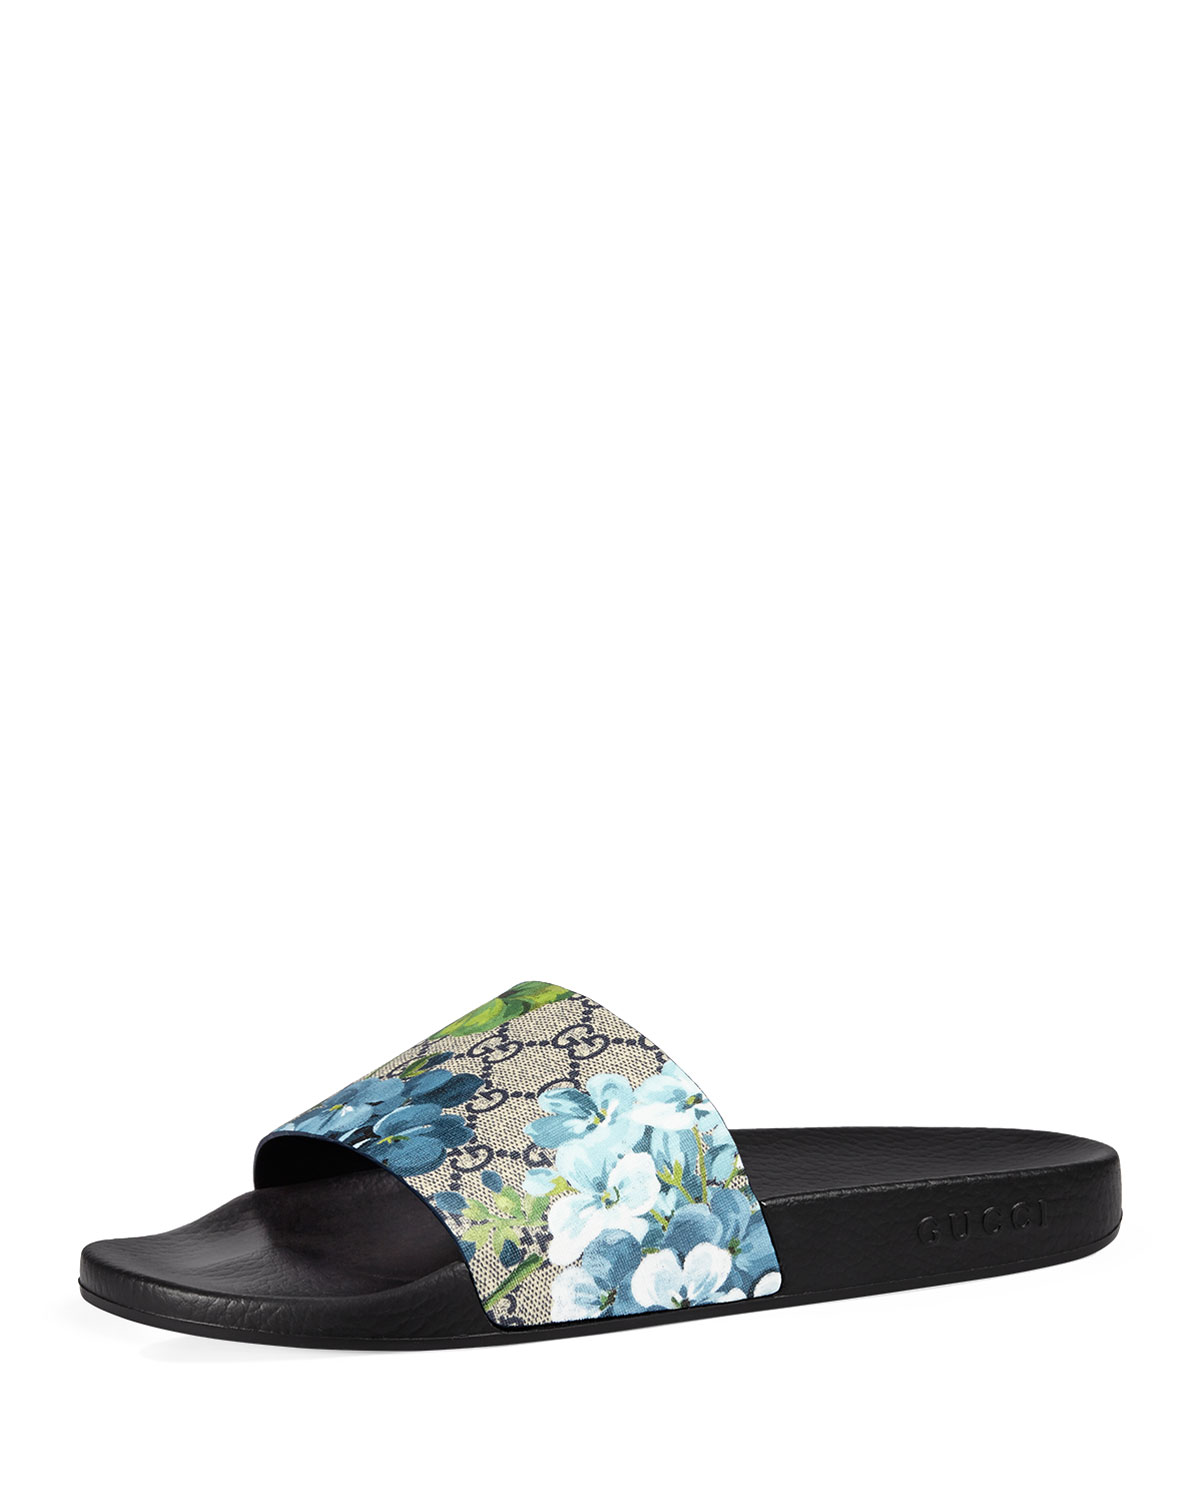 26fd42f9c21 Gucci Men s Pursuit GG Blooms Canvas Sandals